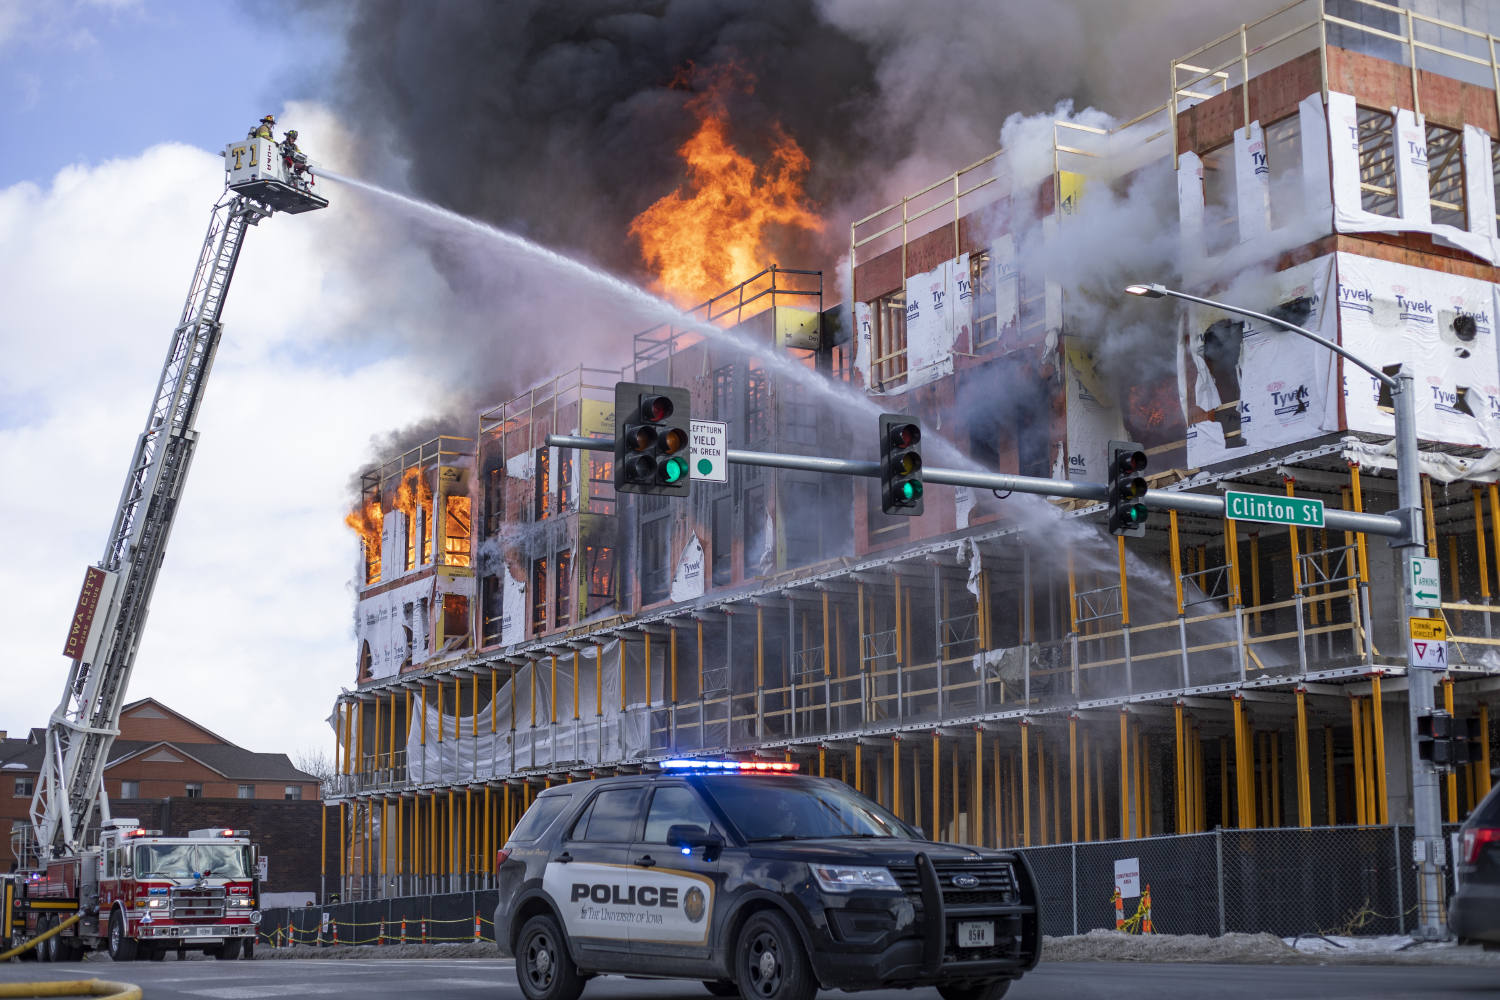 Firefighters respond to a structure fire at Burlington and Clinton on Tuesday, March 5.